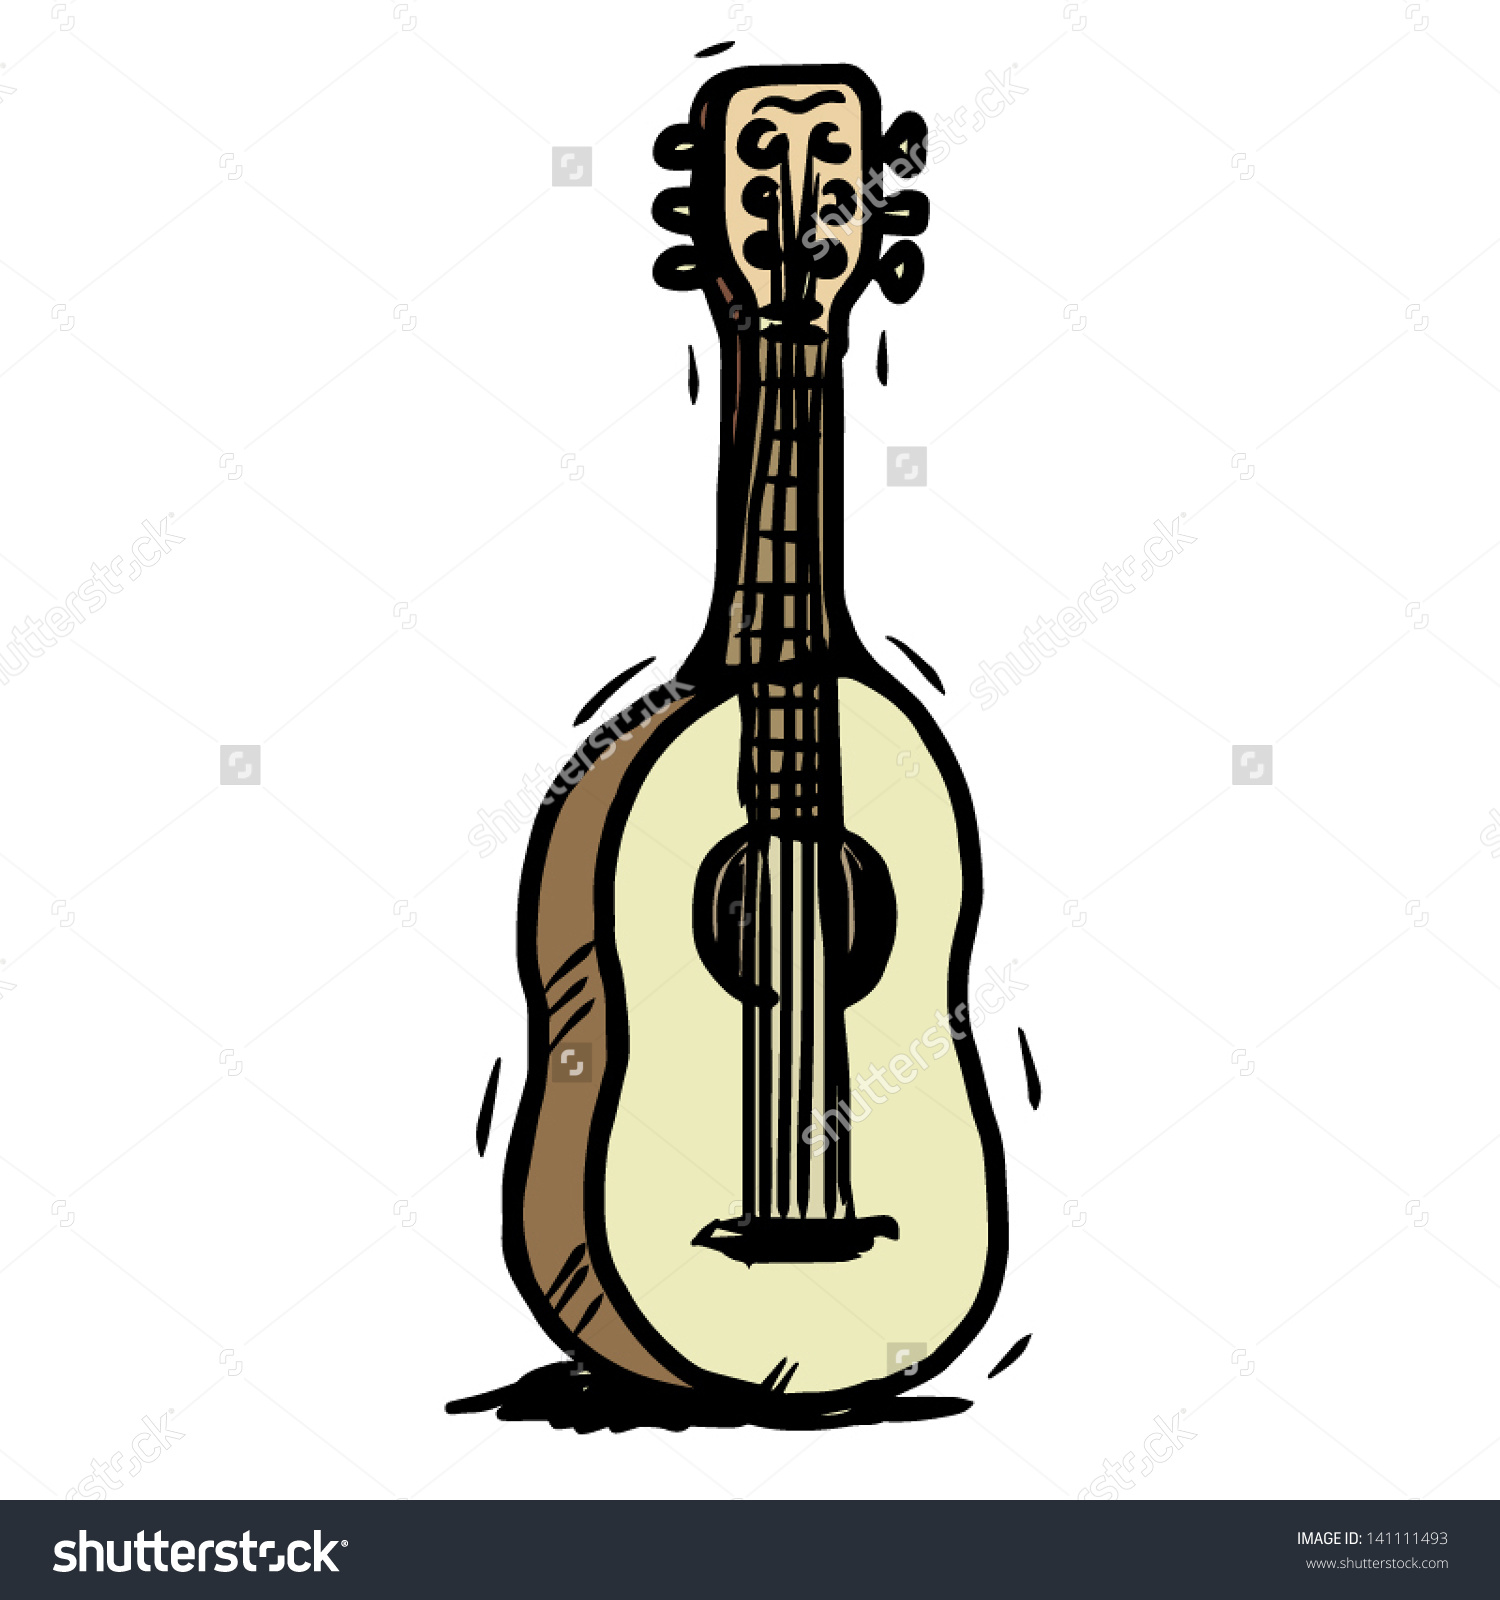 Old Guitar / Cartoon Vector And Illustration, Hand Drawn Style.